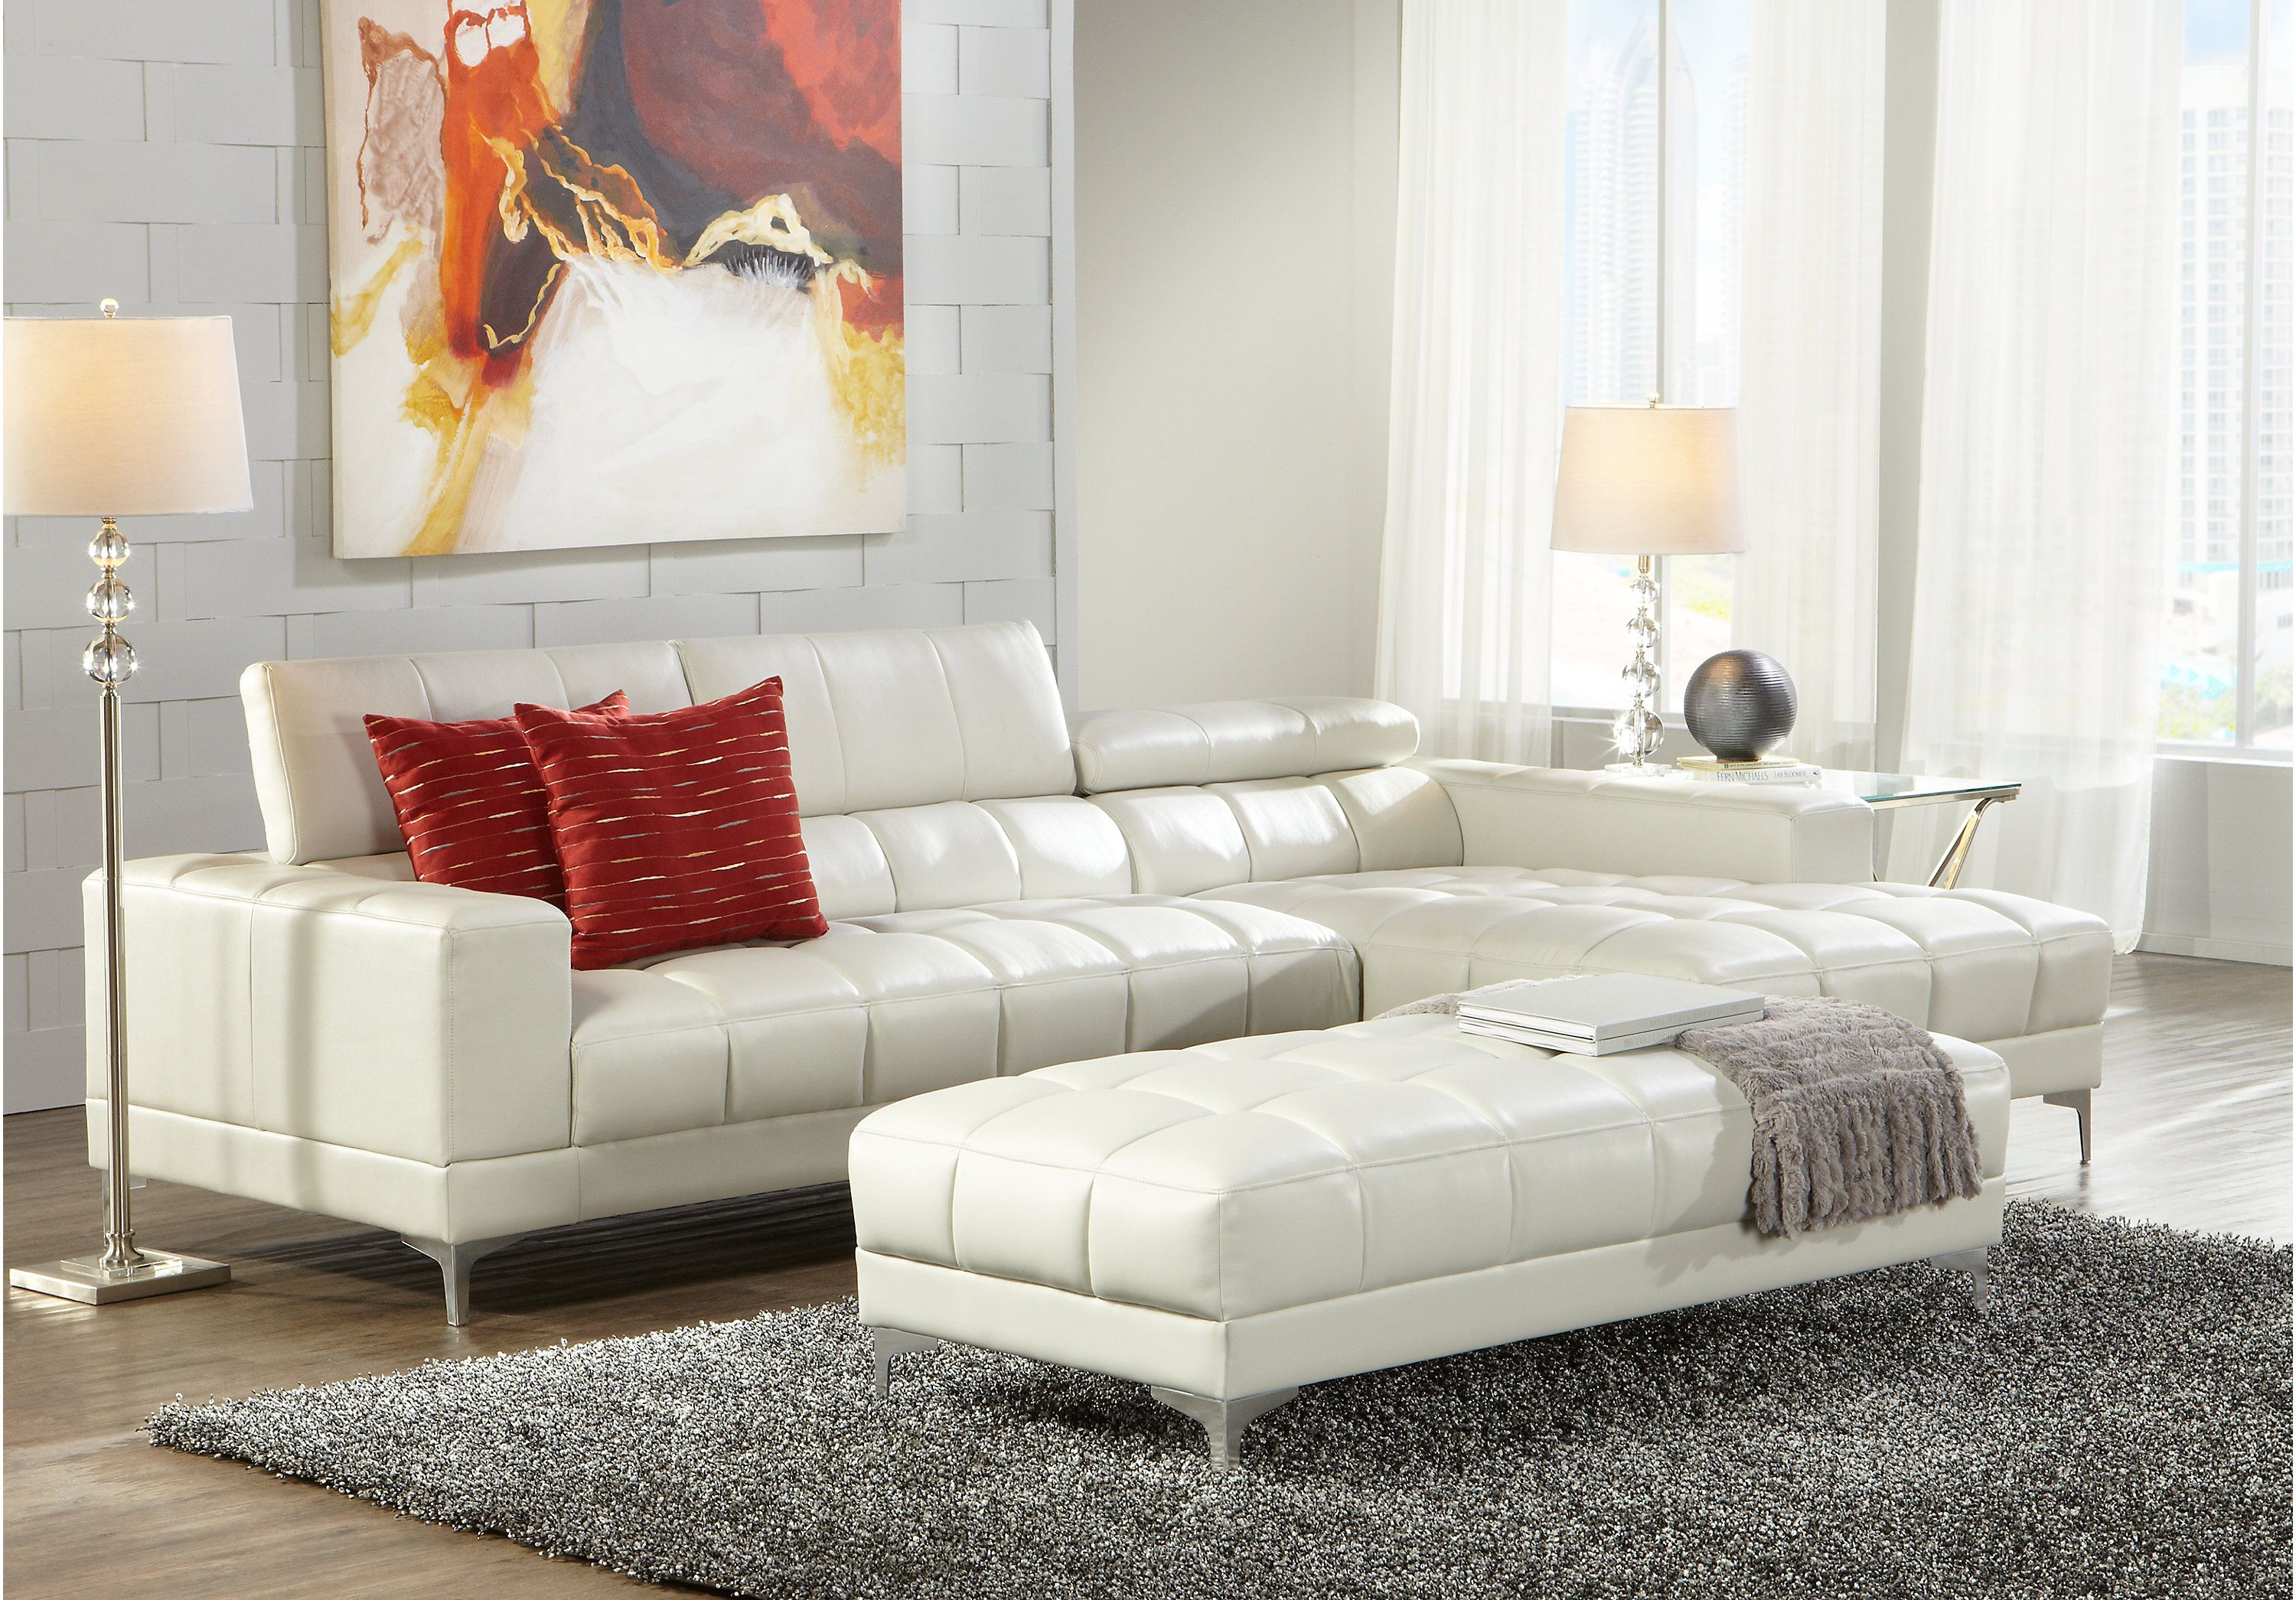 Sofia Vergara Sybella Off White 2 Pc Sectional White Living Room Set Living Room Leather Living Room Sets Furniture